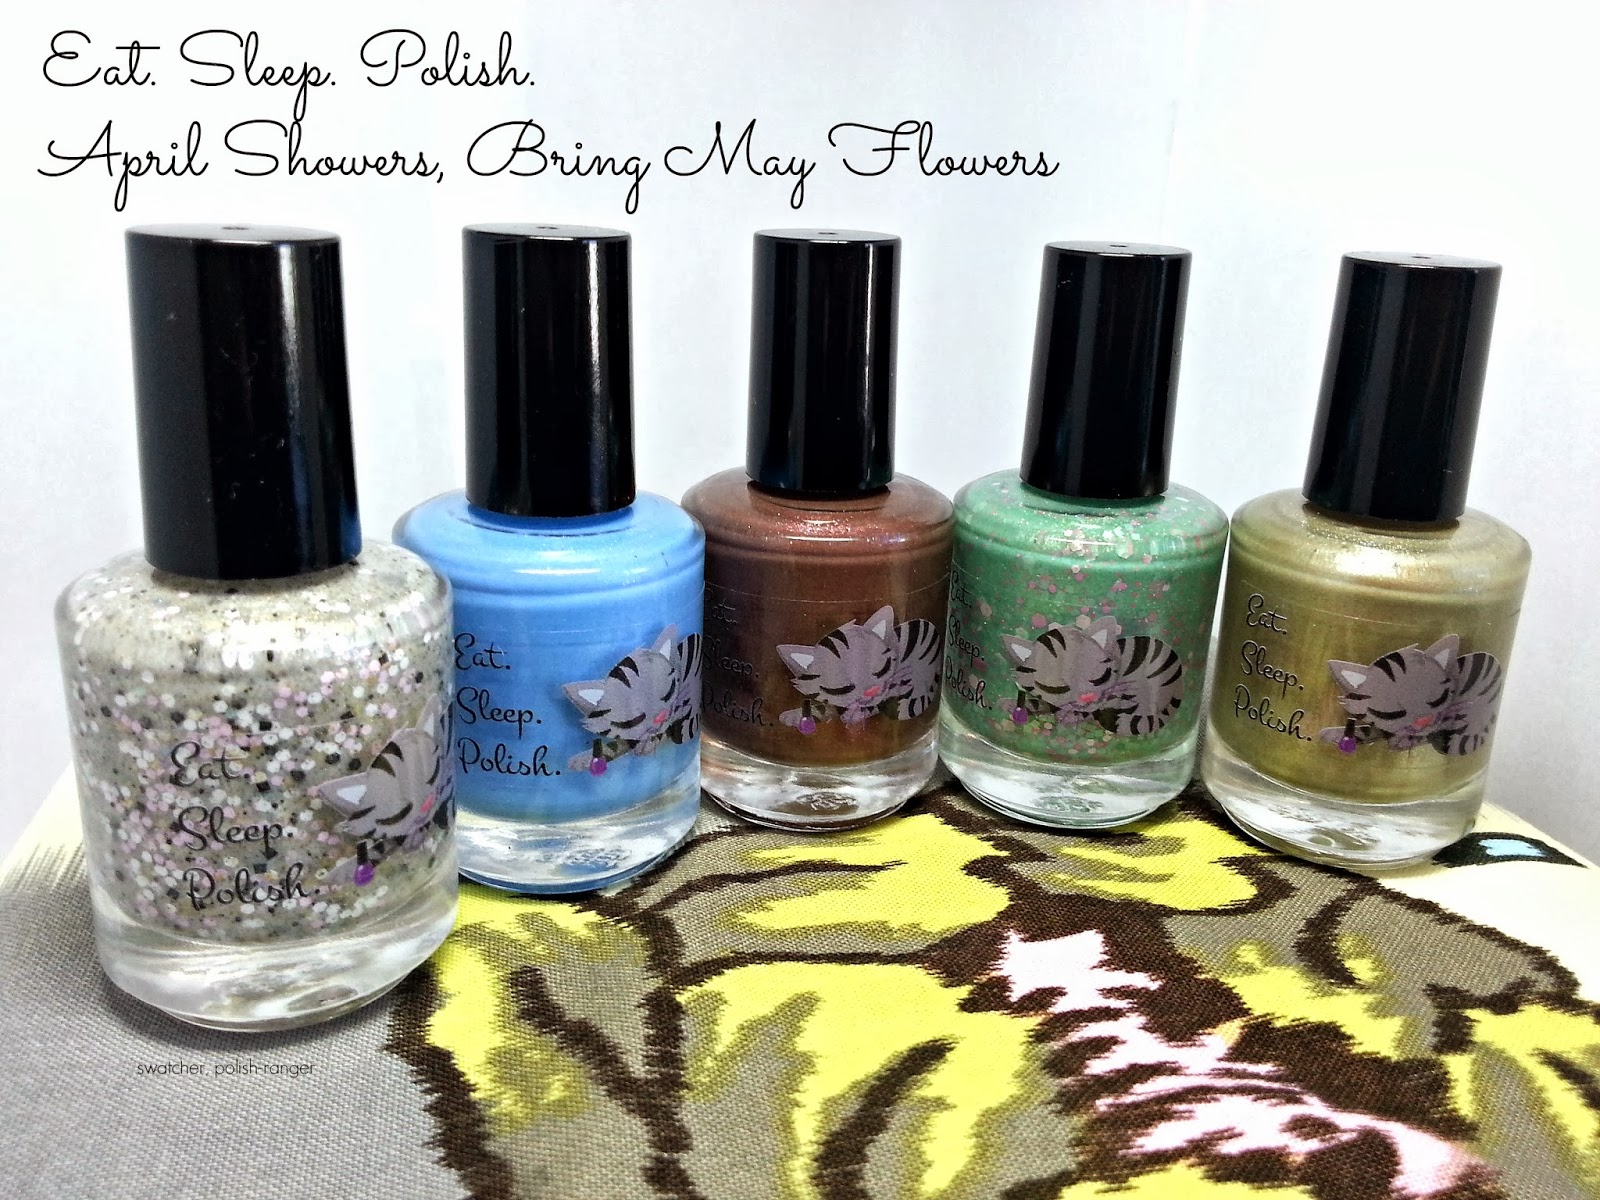 Eat Sleep Polish April Showers Bring May Flowers collection